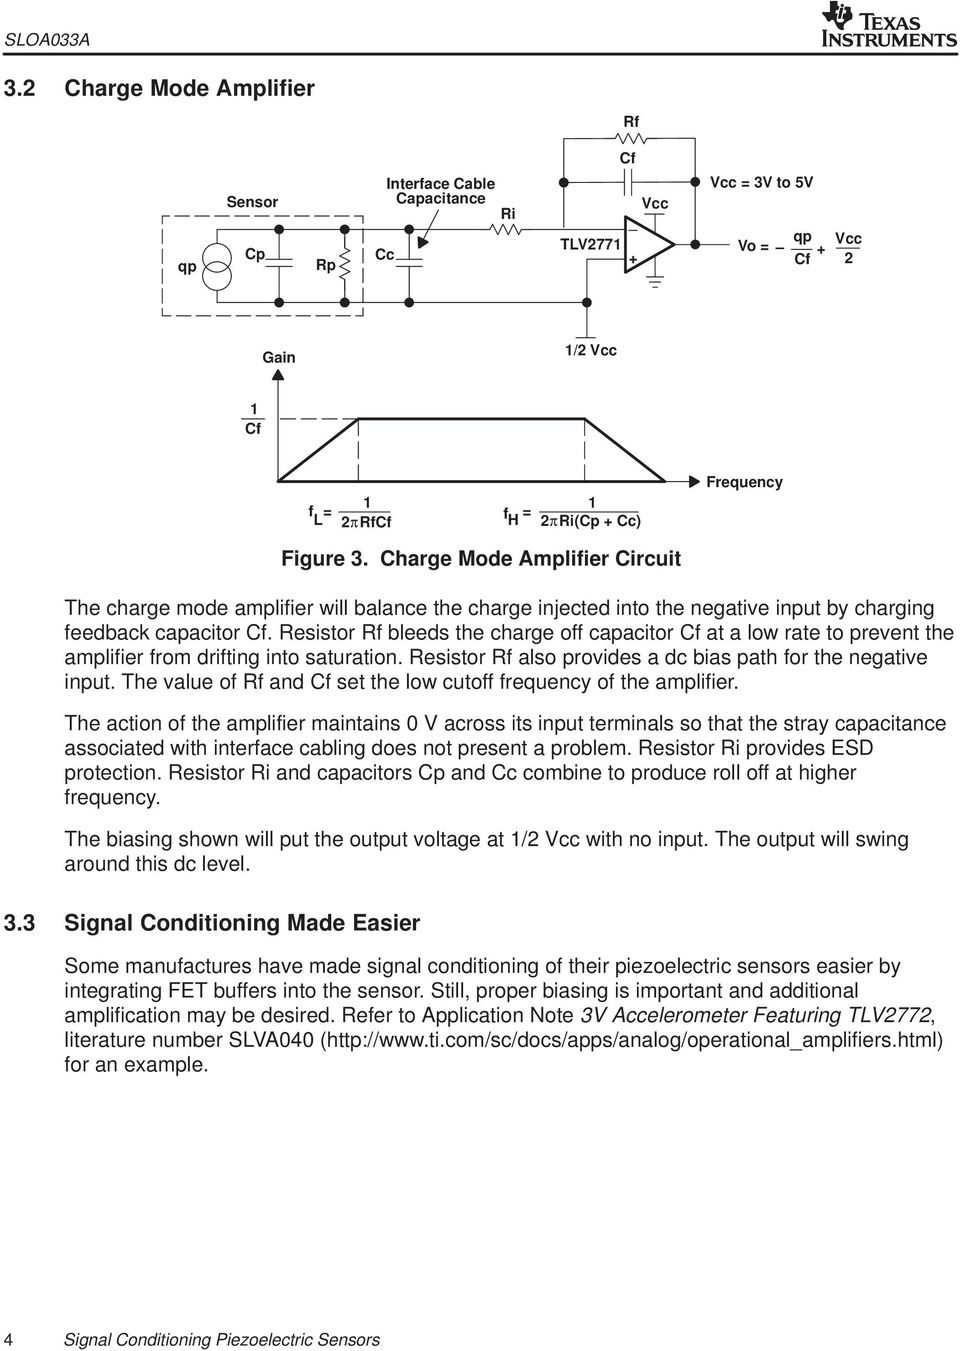 Signal Conditioning Piezoelectric Sensors Pdf Charge Amplifier Circuit Mode The Will Balance Injected Into Negative